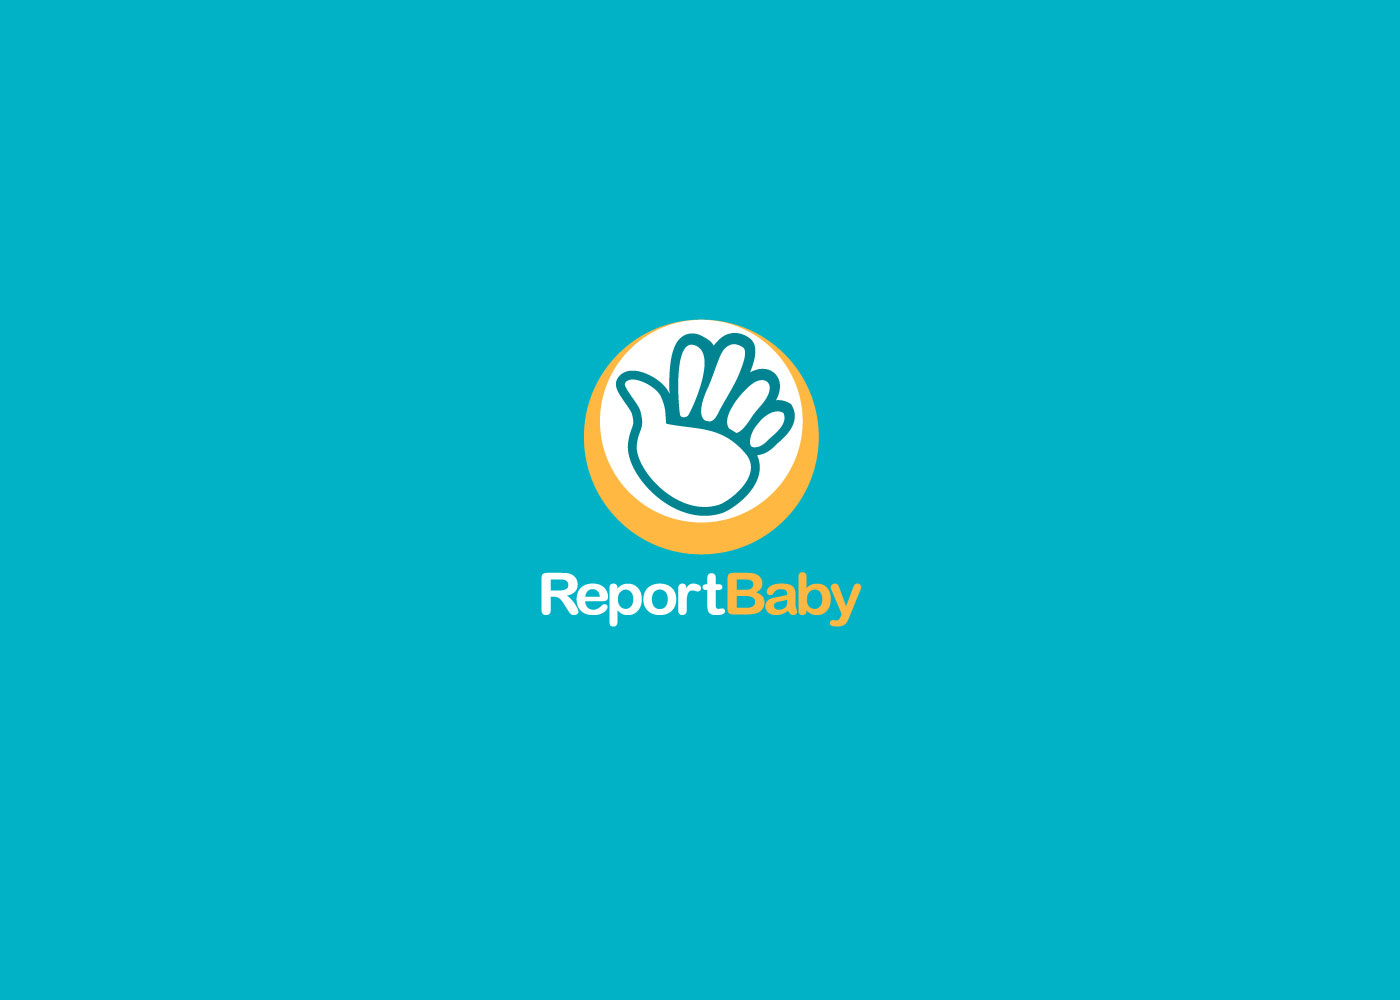 ReportBaby Site